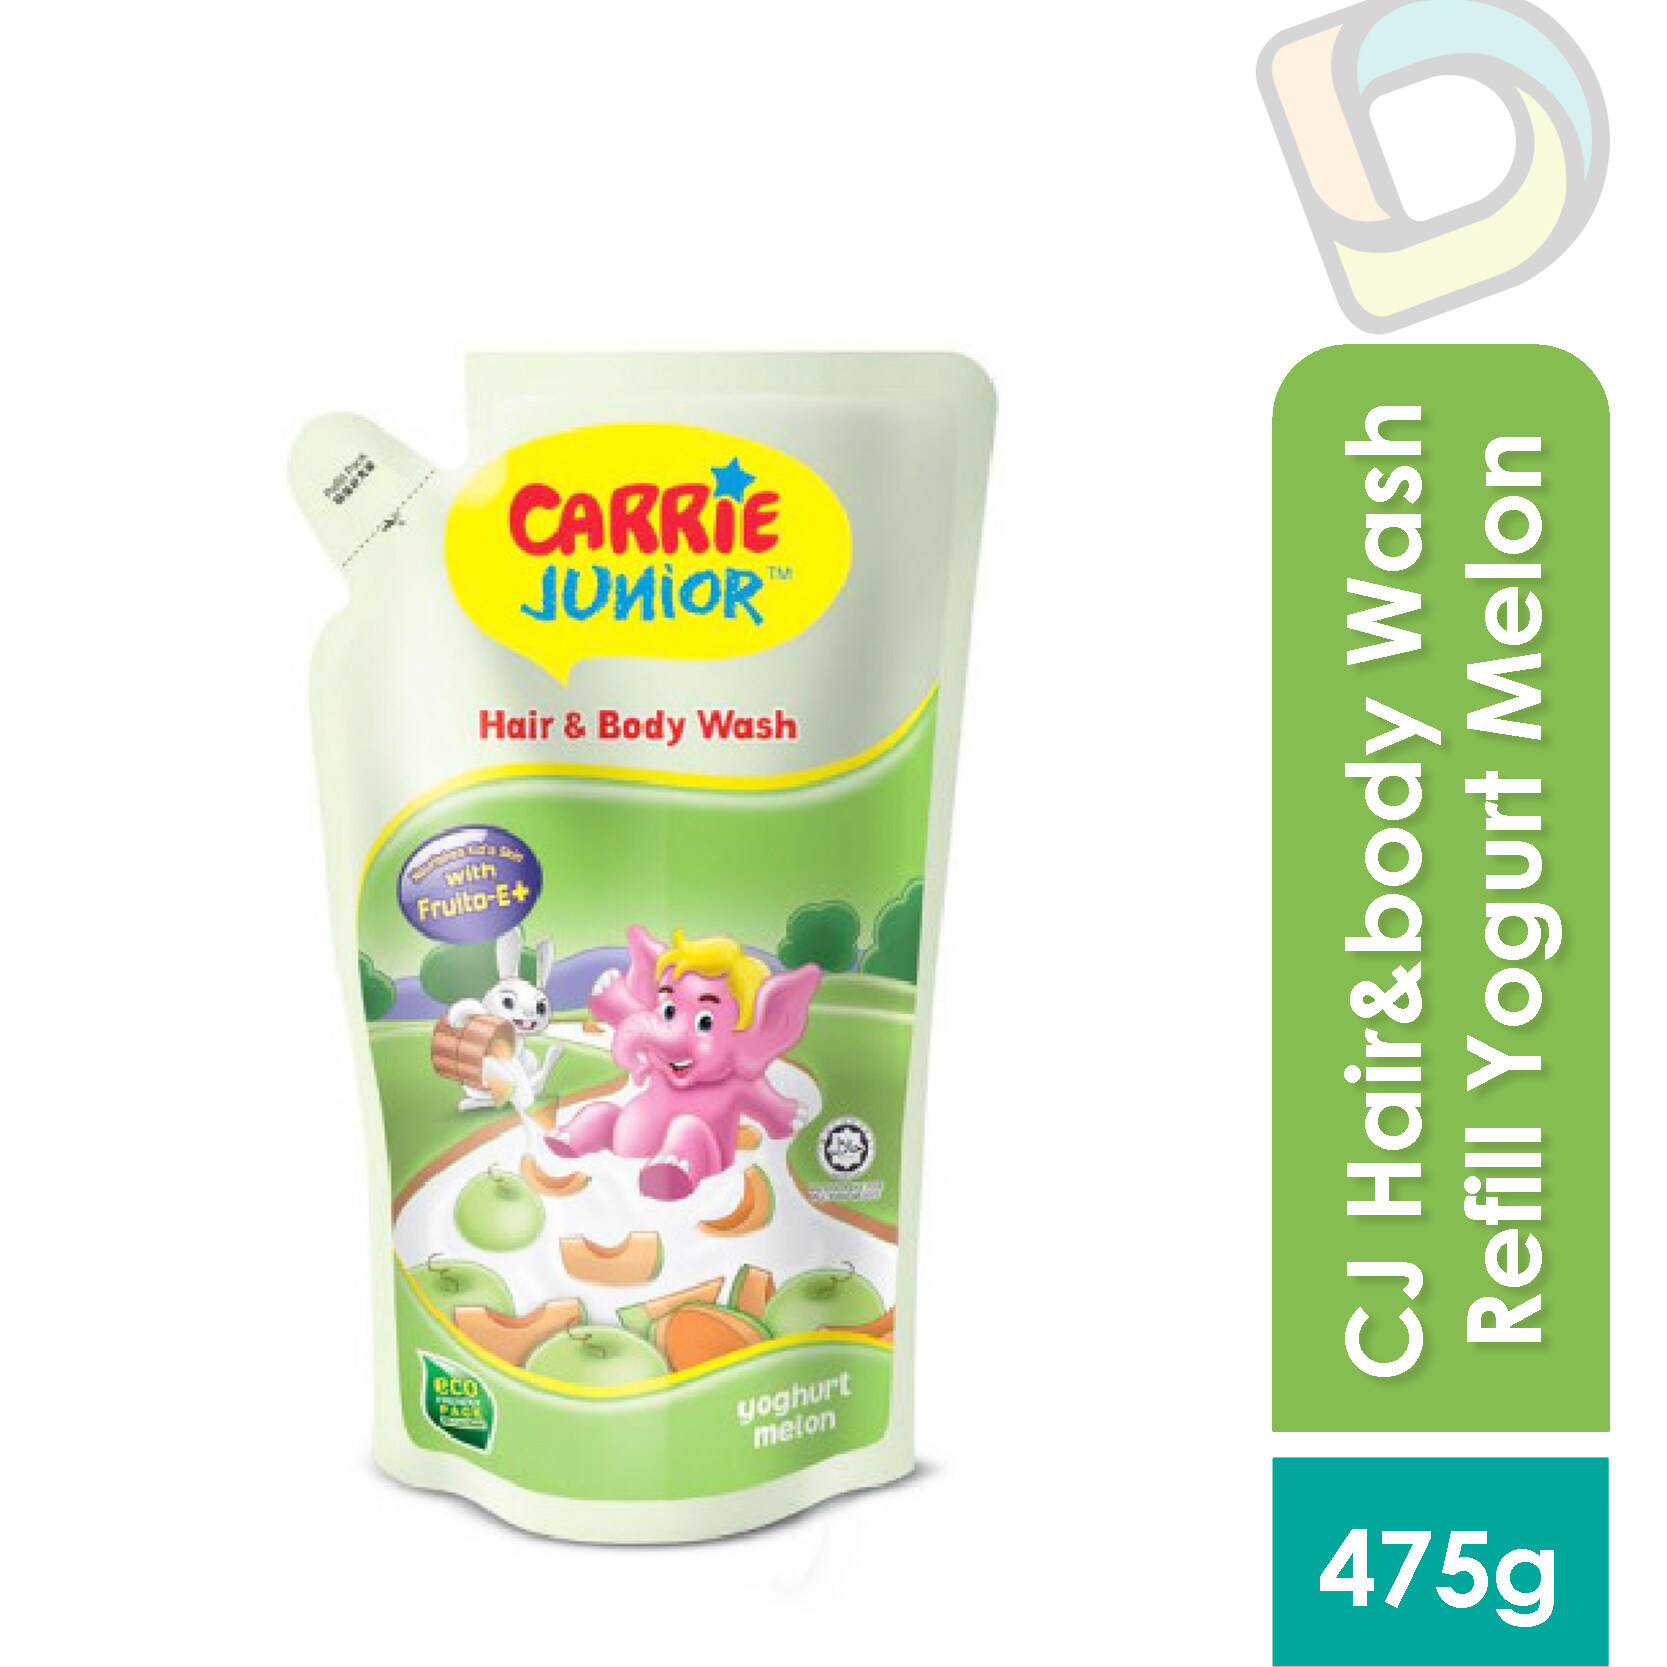 Carrie Junior Refill Pack Hair & Body Wash Pouch 500g